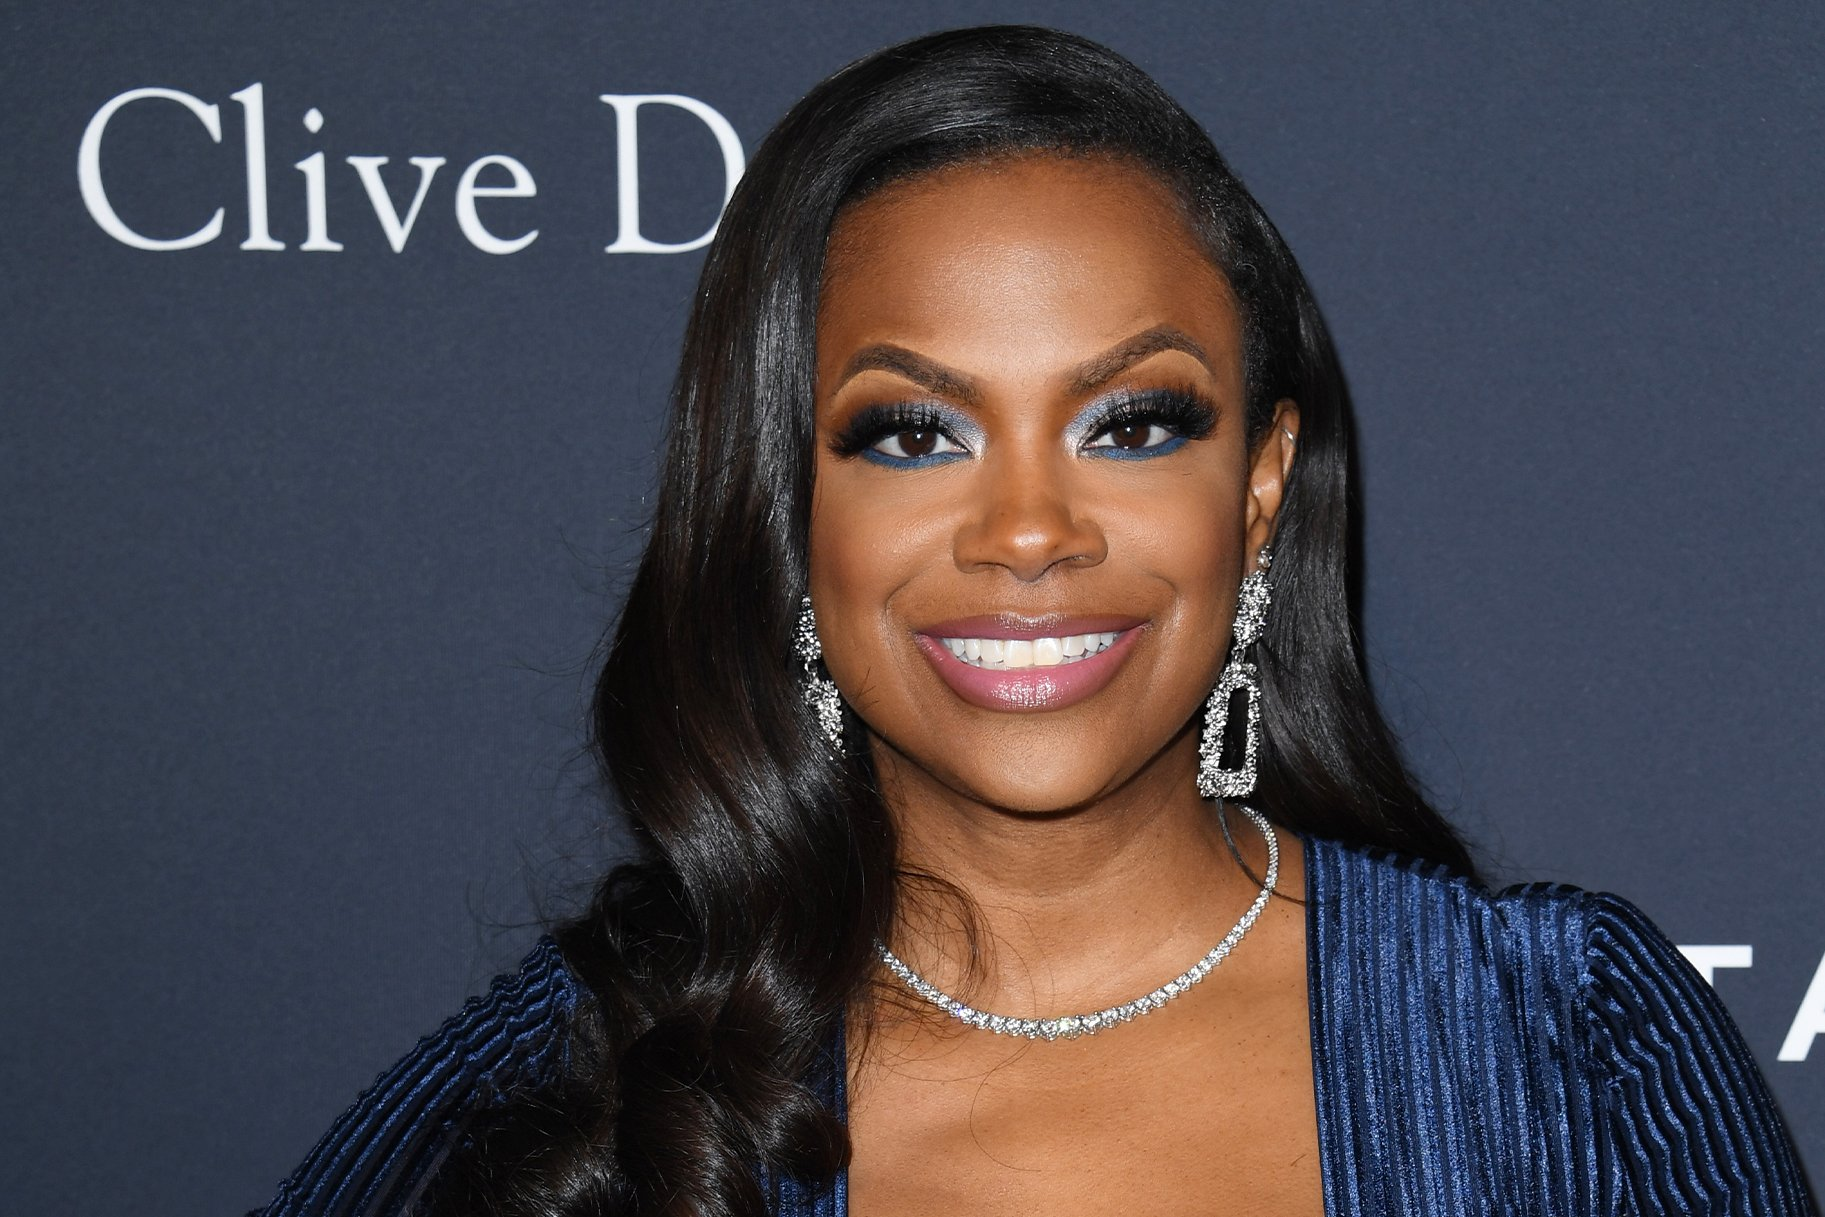 Kandi Burruss Shares A Gorgeous Look For Fans On Social Media – Check Her Out In This Blue Dress